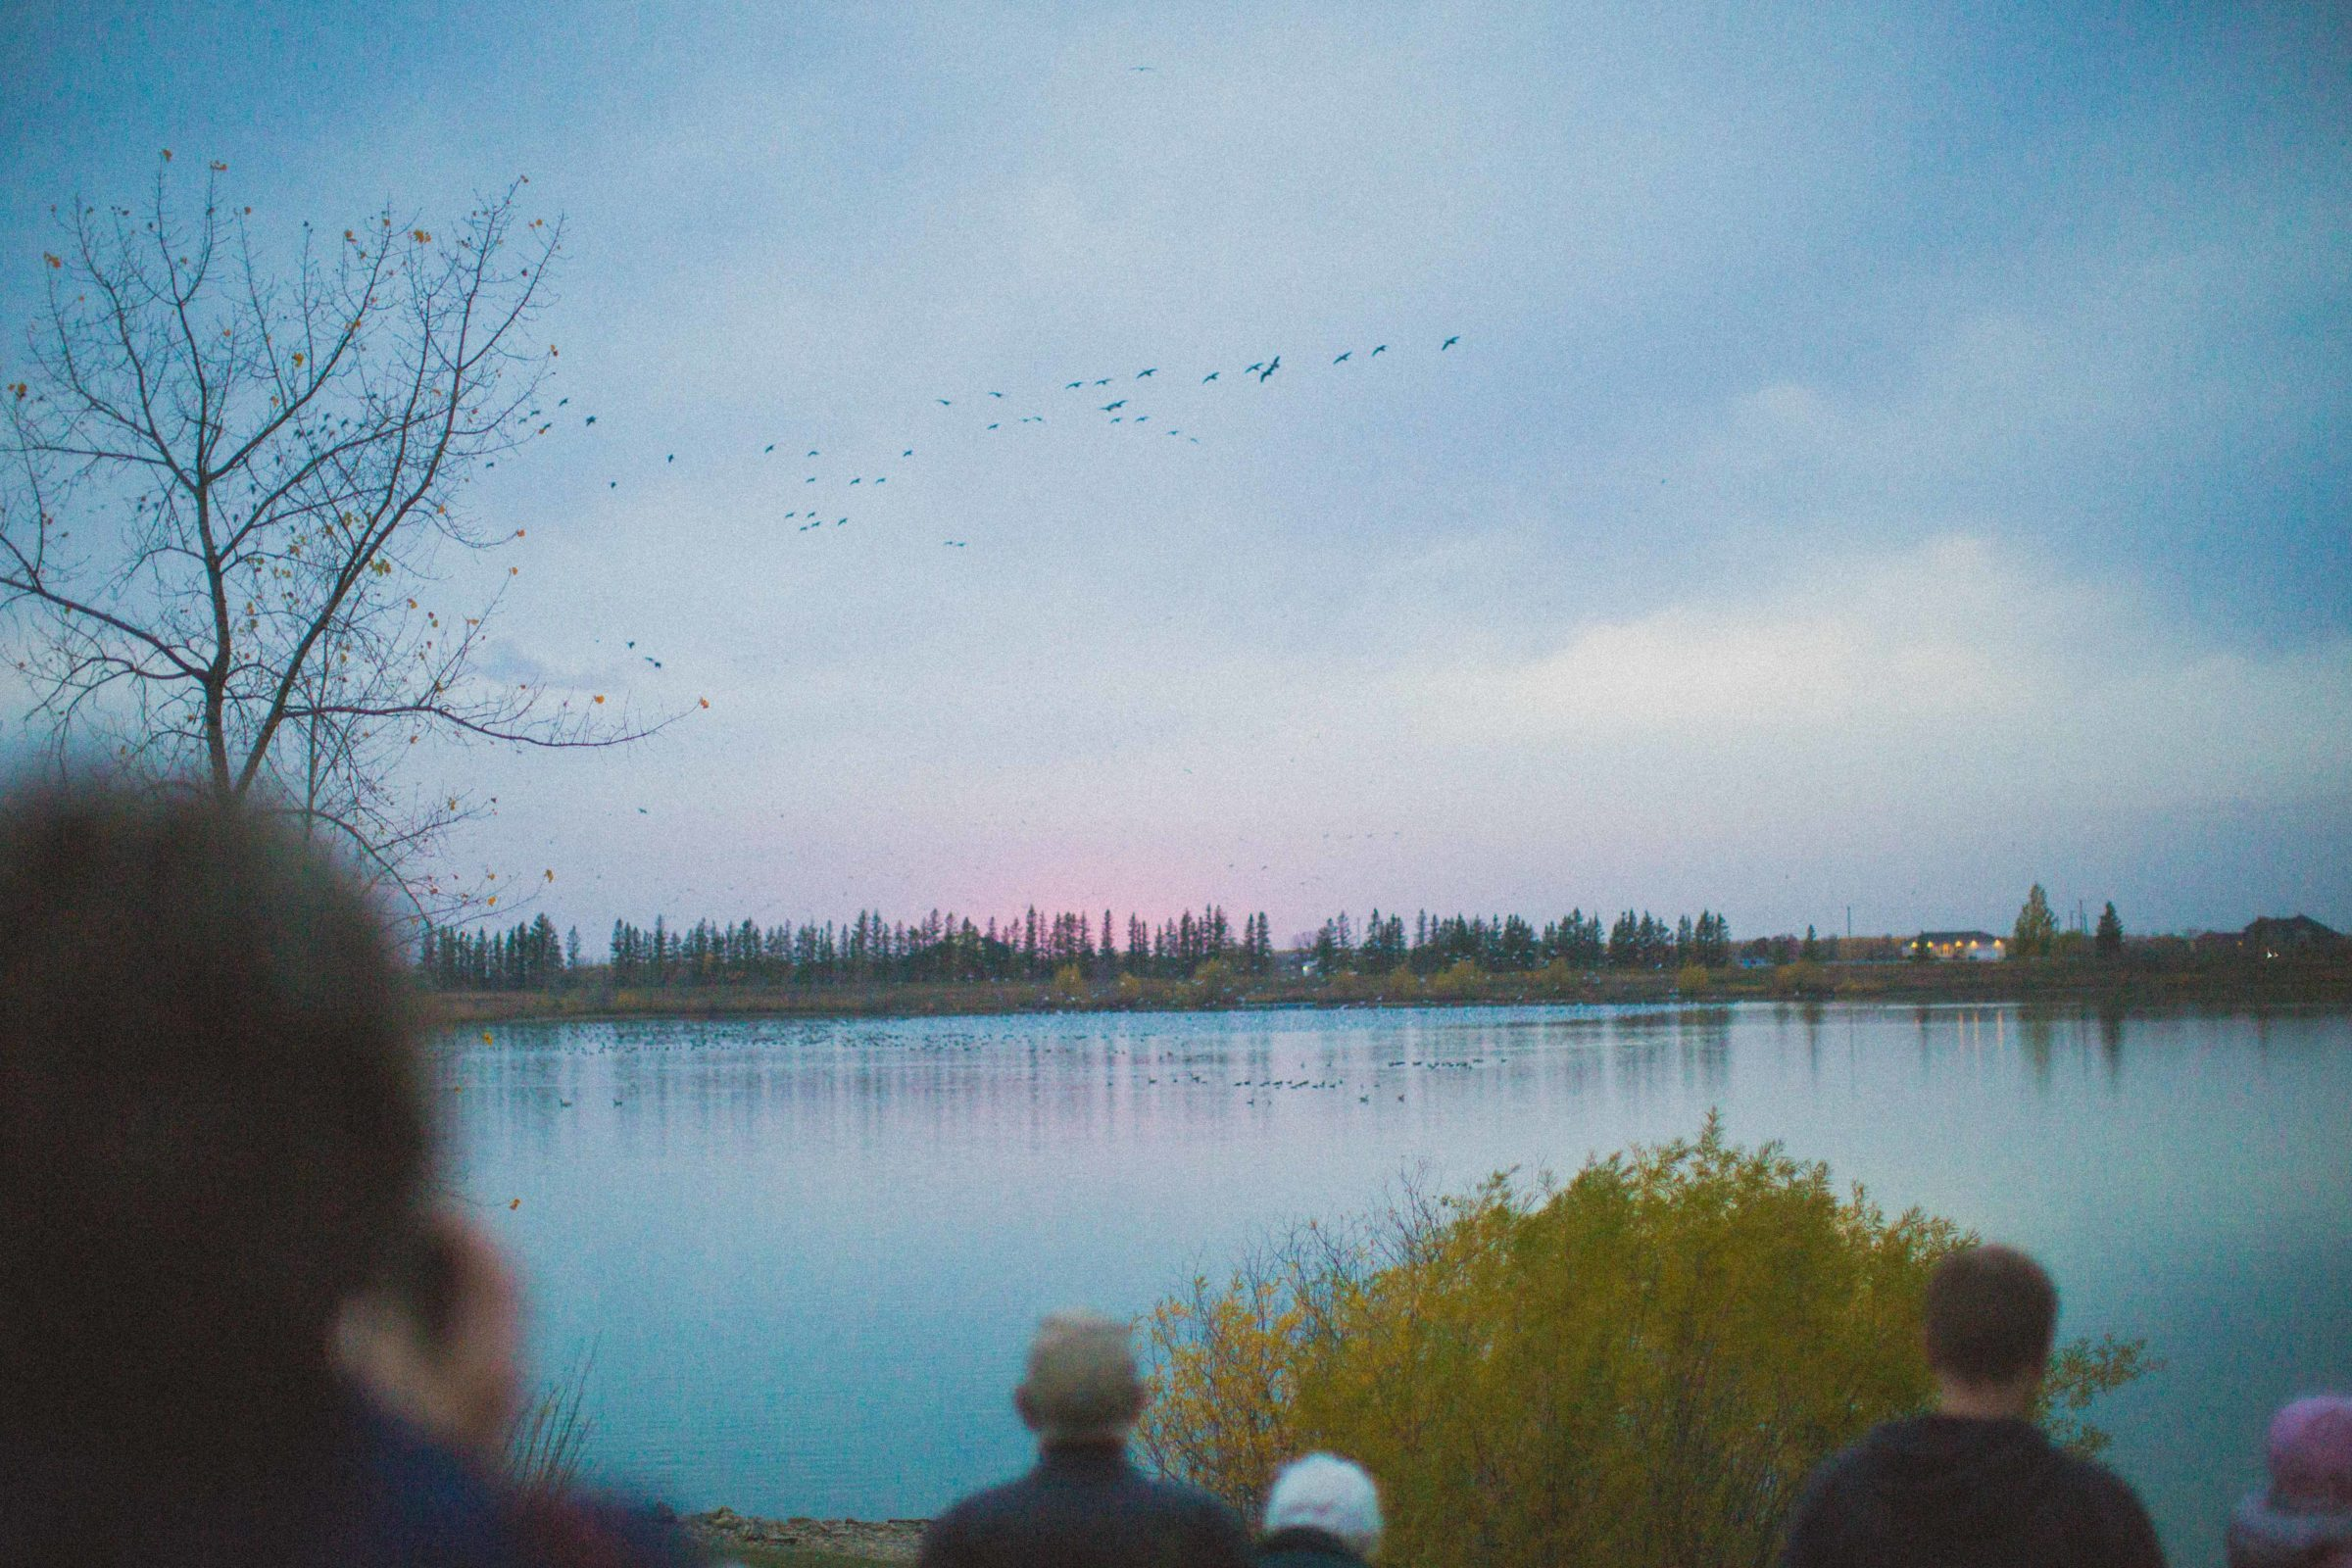 A group of visitors take in fall migration as birds descend on the lake at sunset.